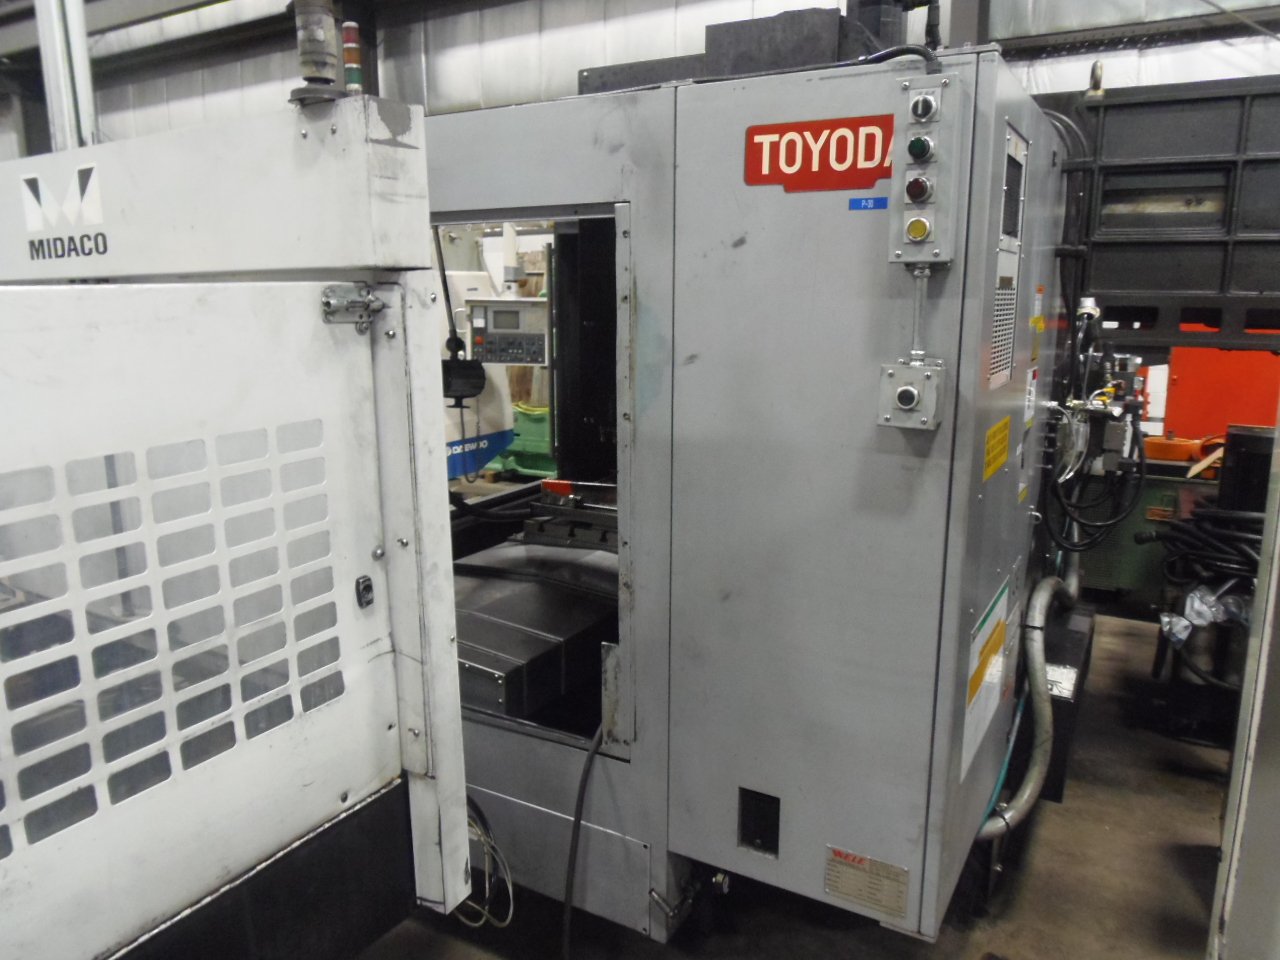 TOYODA FV965 VMC WITH MIDACO A40SD PALLET CHANGER, FANUC 18i CONTROL, 6000 RPM, 25.6 X 35.4 X 23.6 TRAVELS, 2011